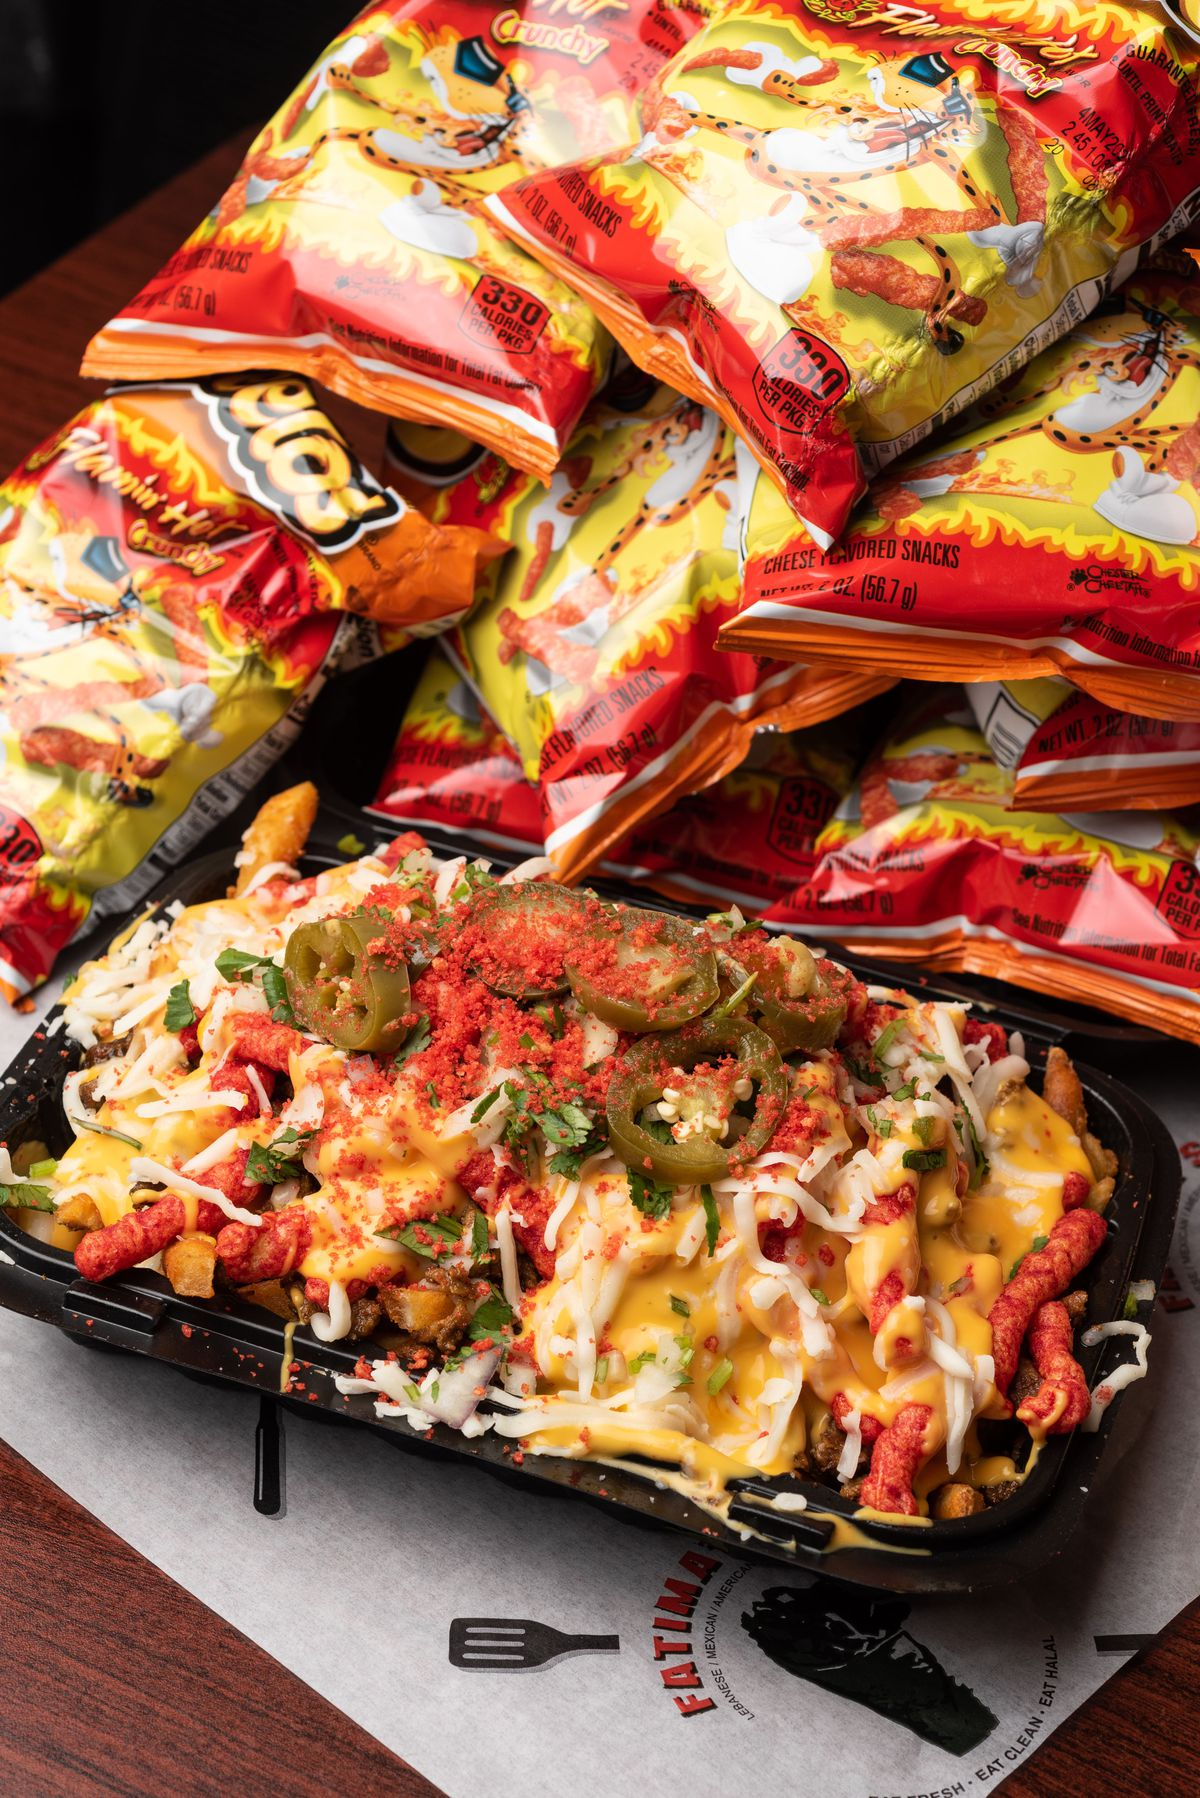 Fries topped with nacho cheese and Hot Cheetos inside of a restaurant.